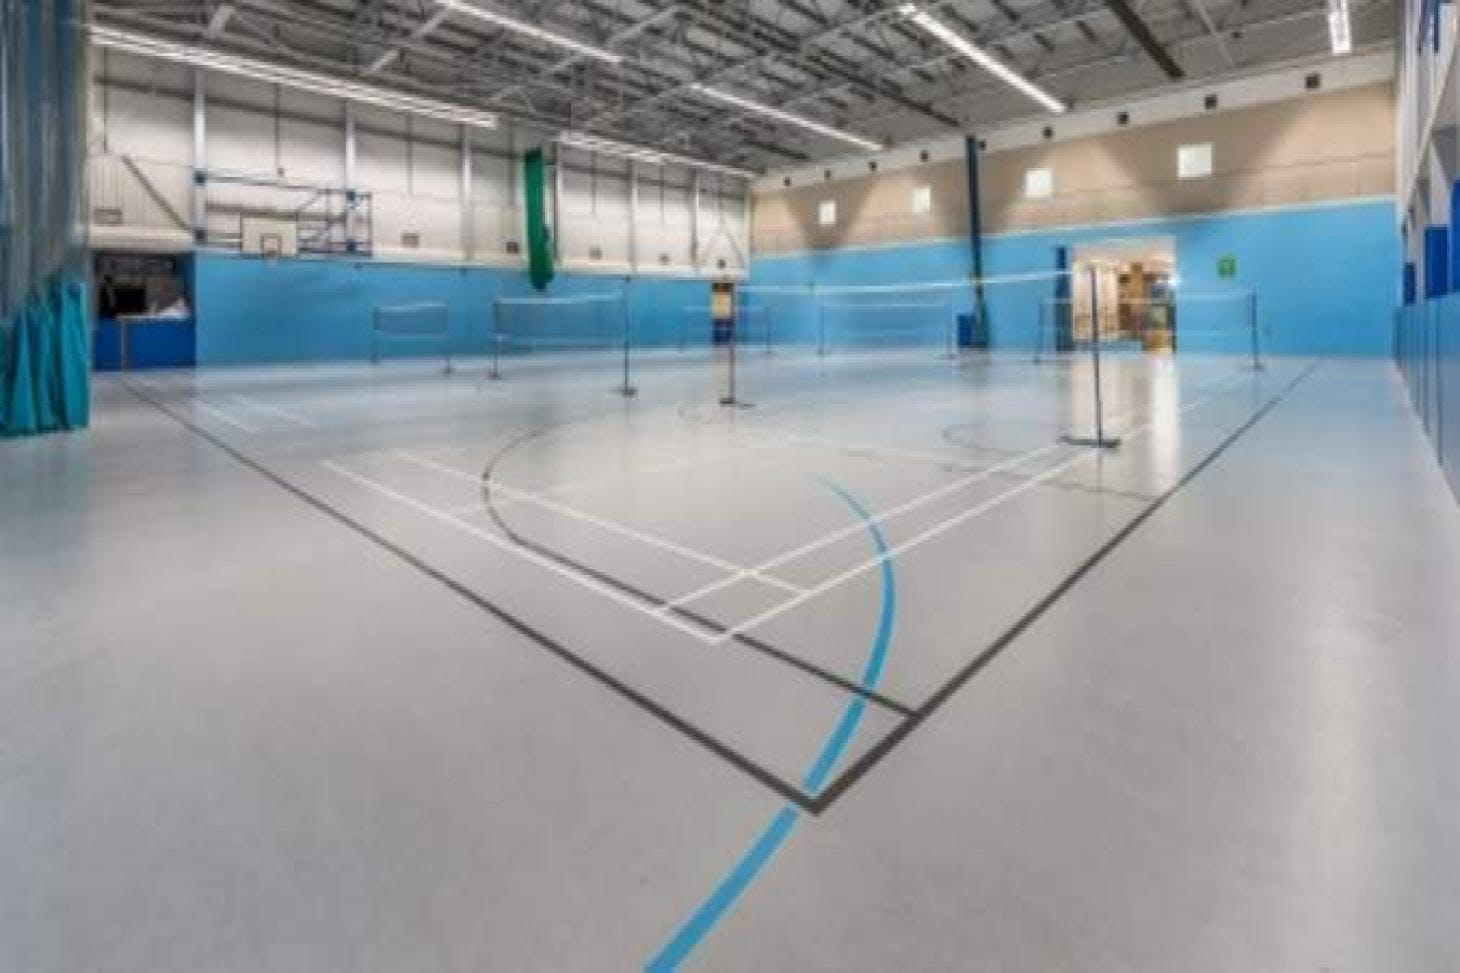 Canons Leisure Centre Indoor basketball court